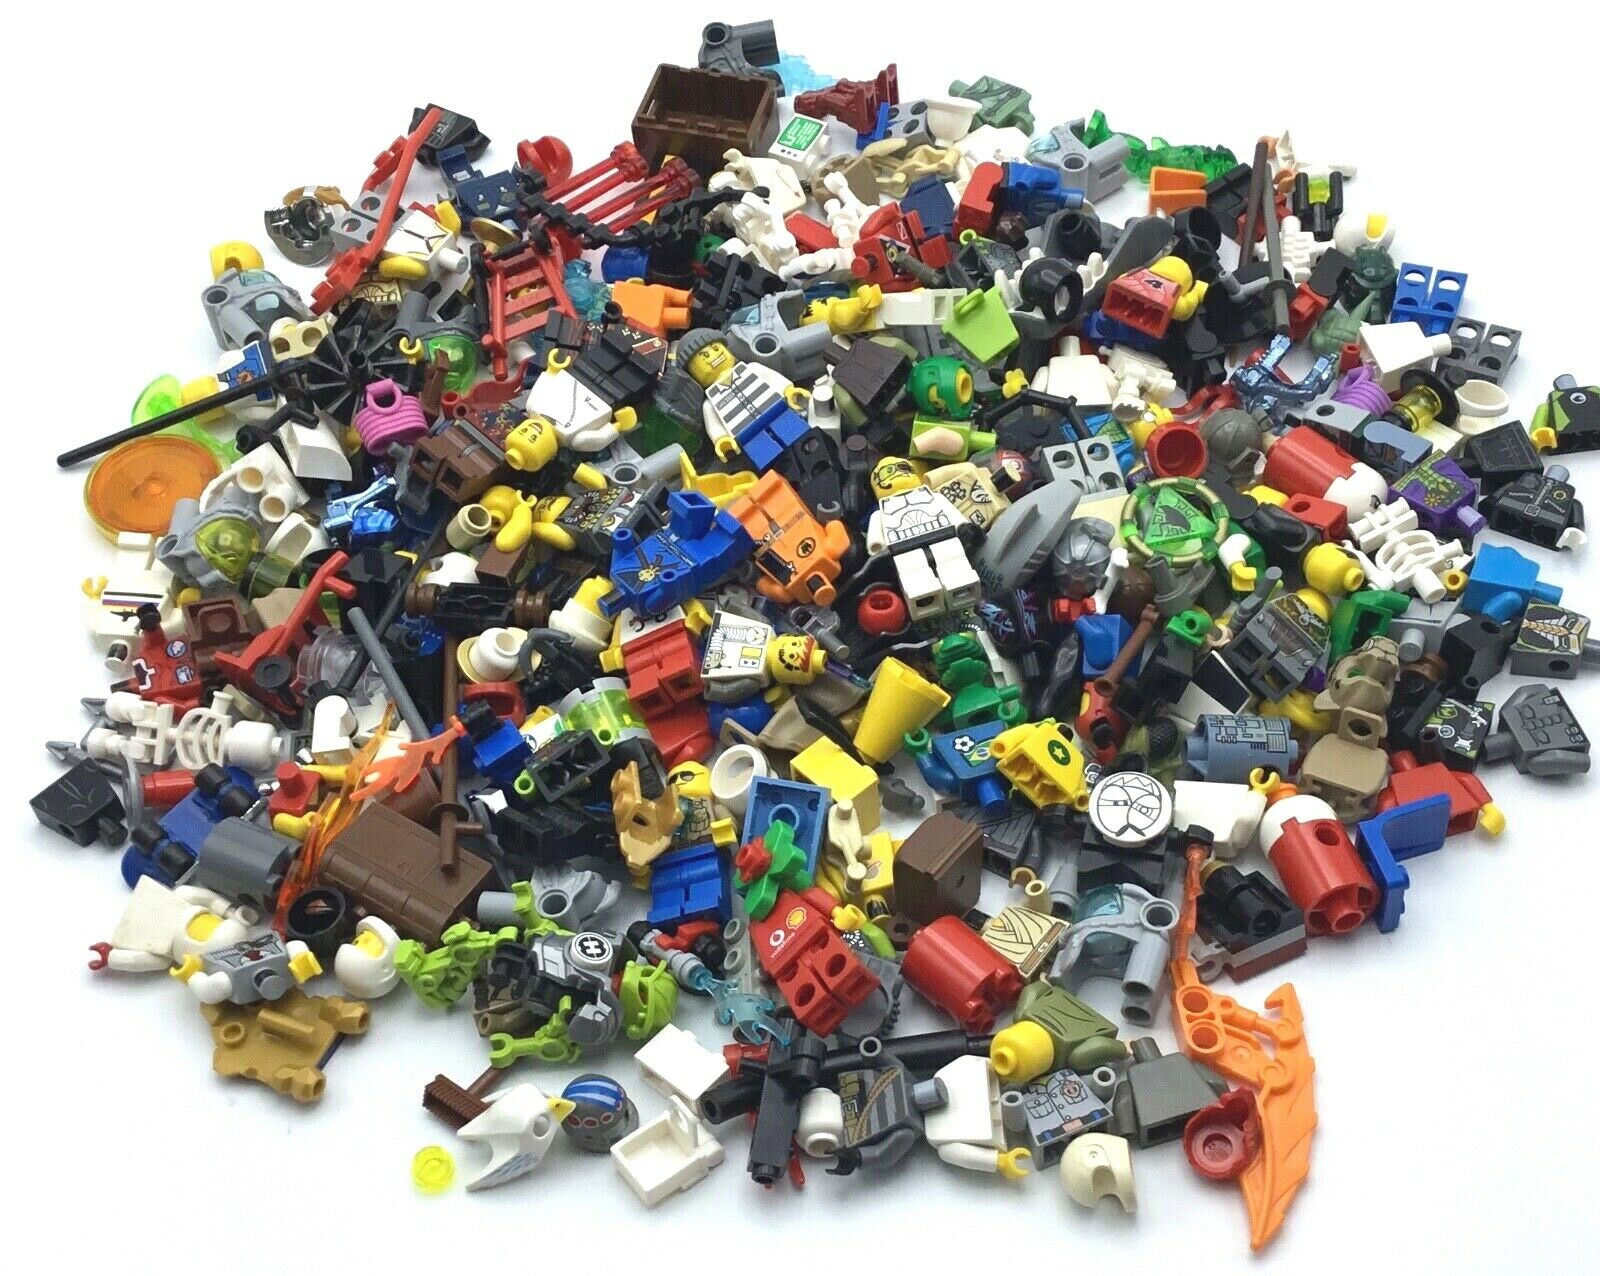 LEGO HUGE ONE POUND LOT OF MINIFIGURES BODY PARTS & ACCESSORIES BULK MIX